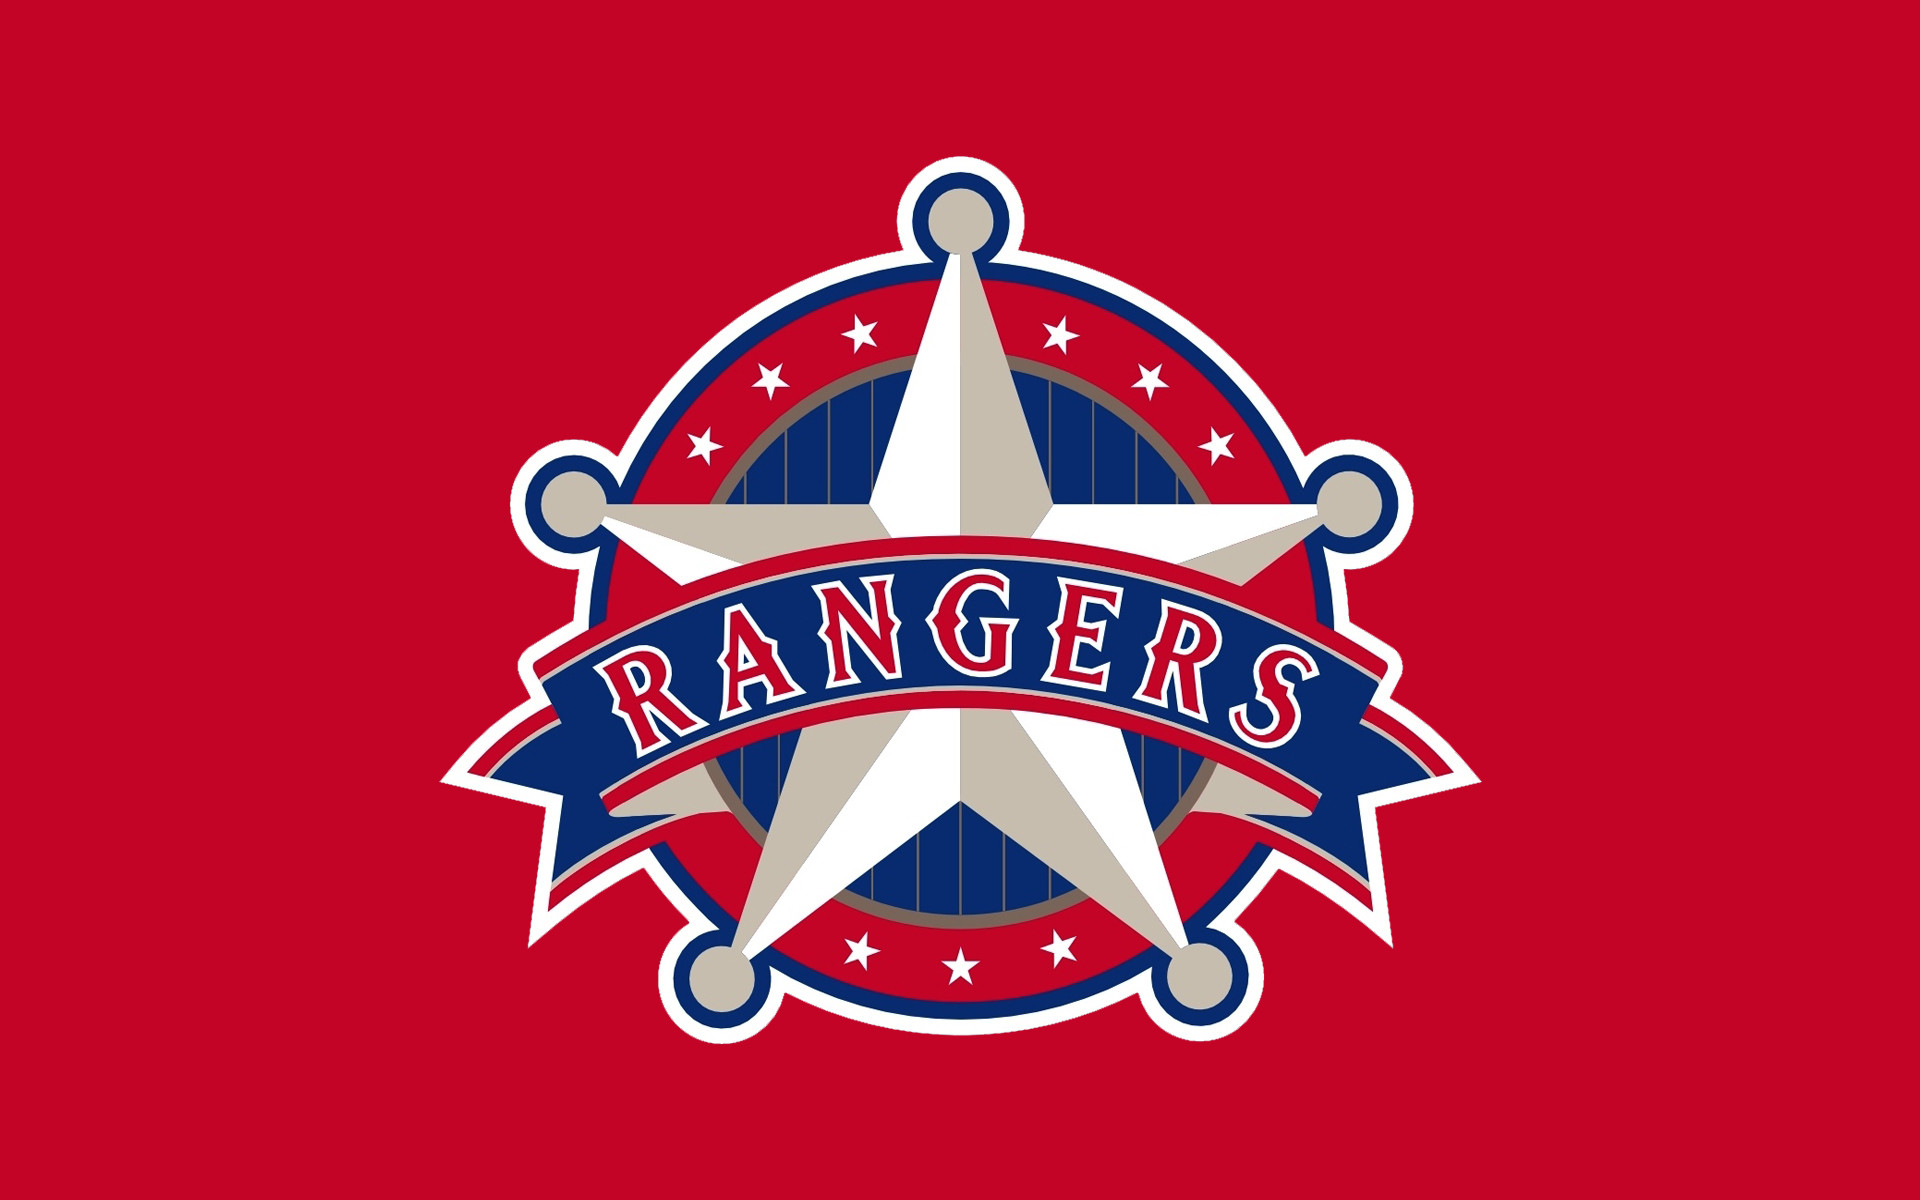 Texas Rangers Wallpapers | HD Wallpapers Early